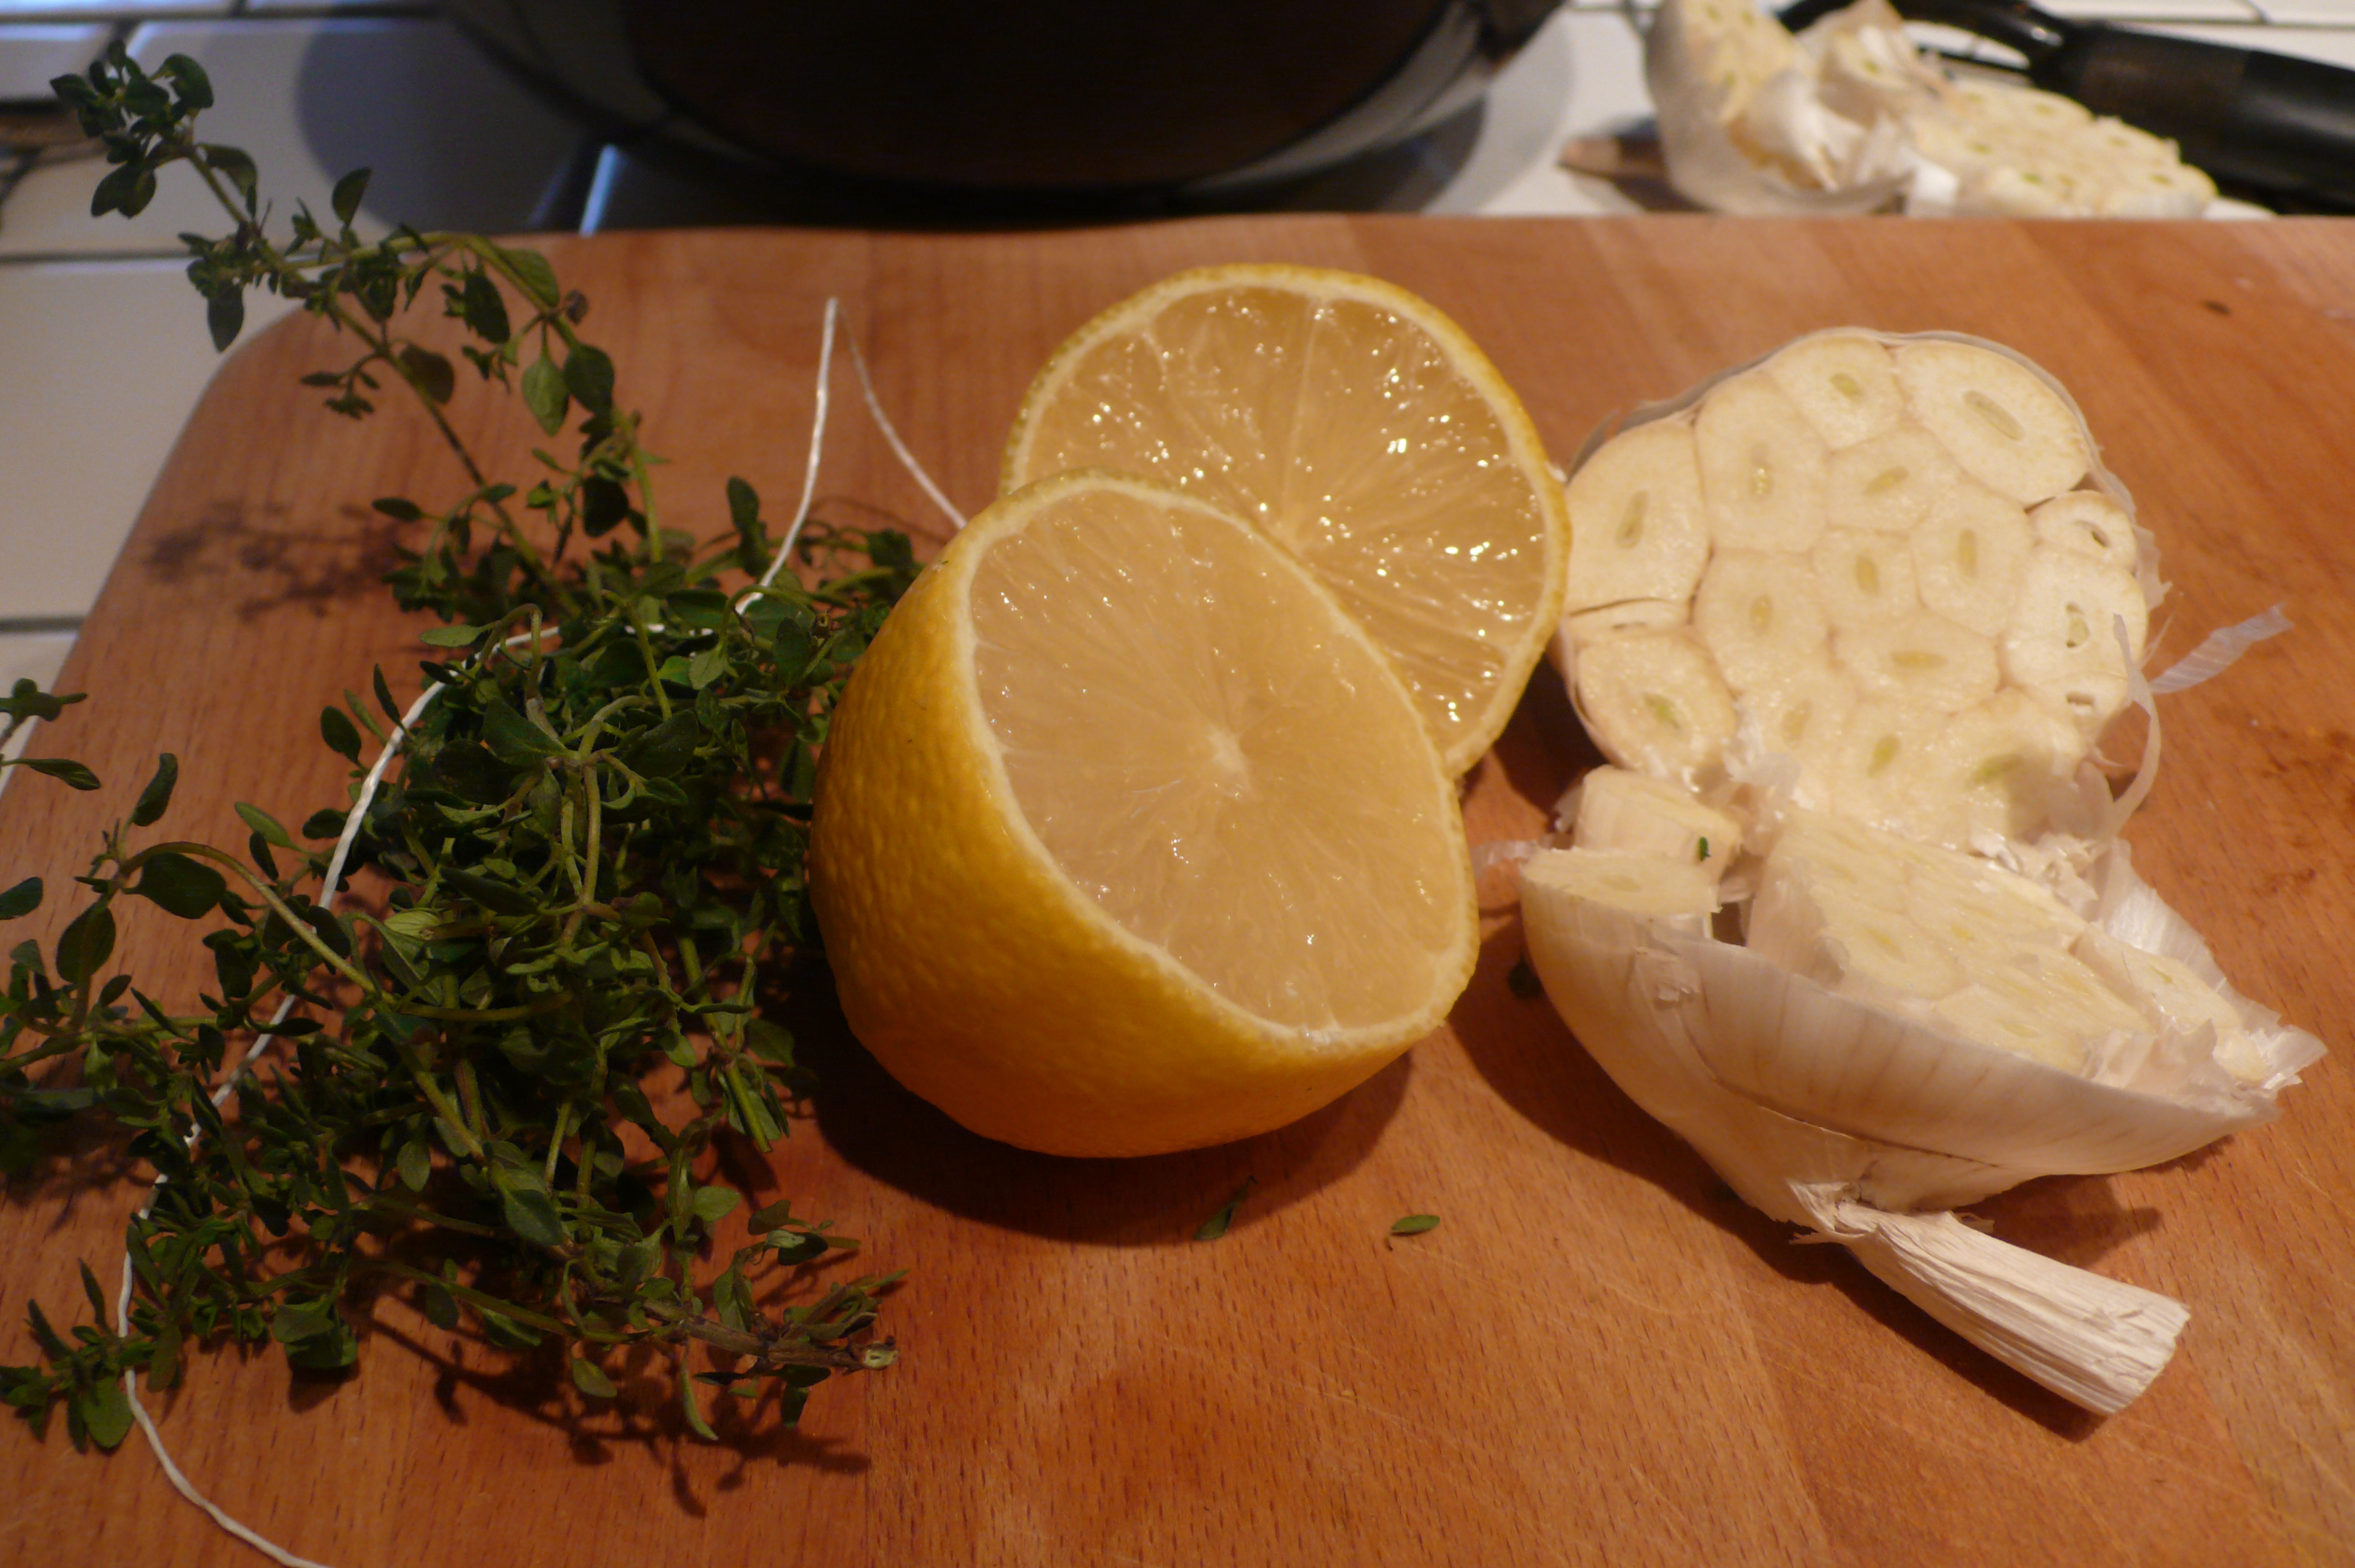 lemon, thyme and garlic to stuff inside chicken